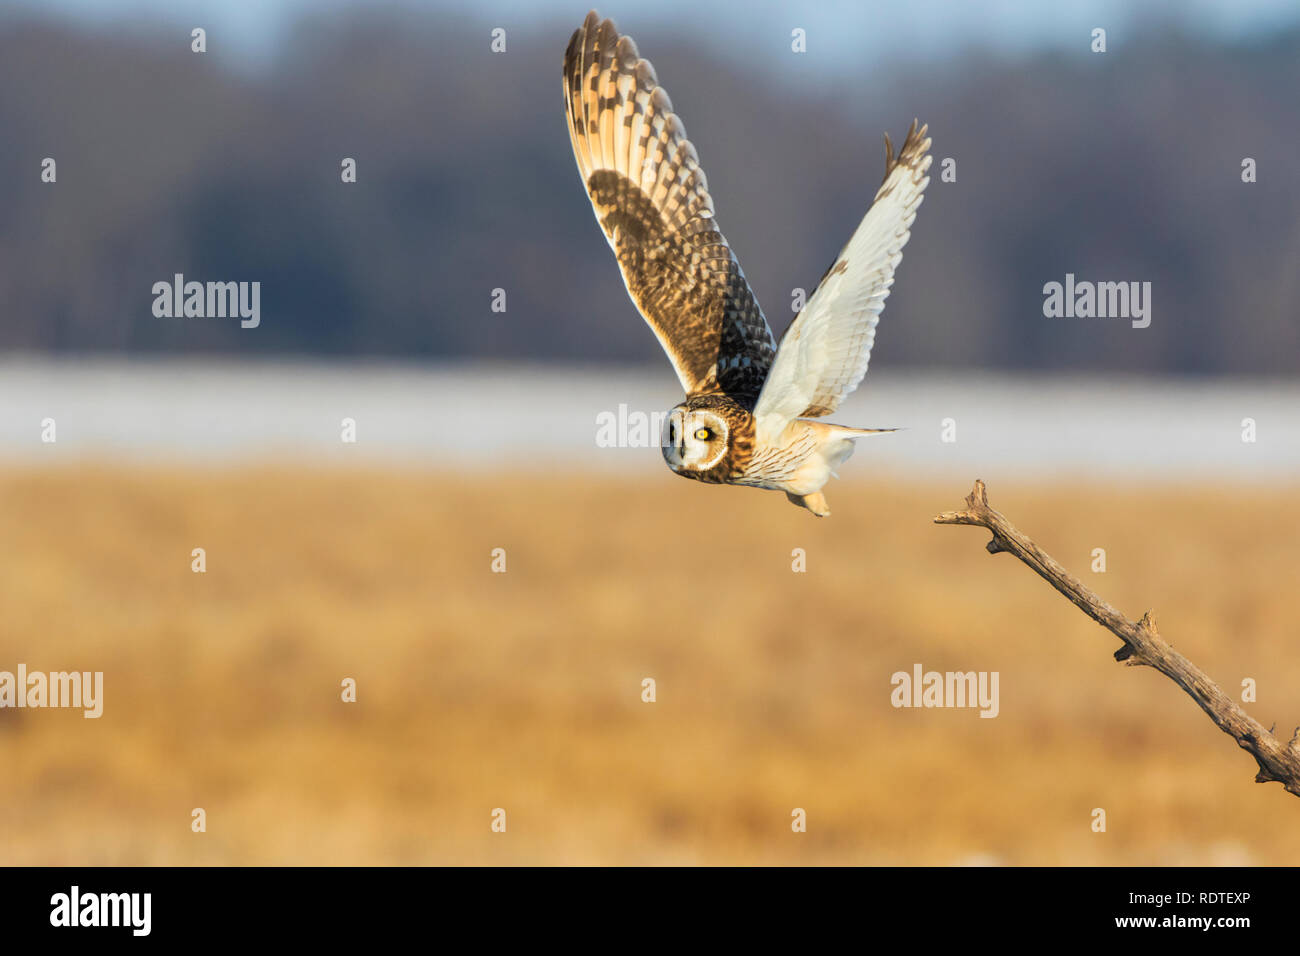 01113-02013 Short-eared Owl (Asio flammeus) lifting off from perch Prairie Ridge State Natural Area Marion Co. IL Stock Photo